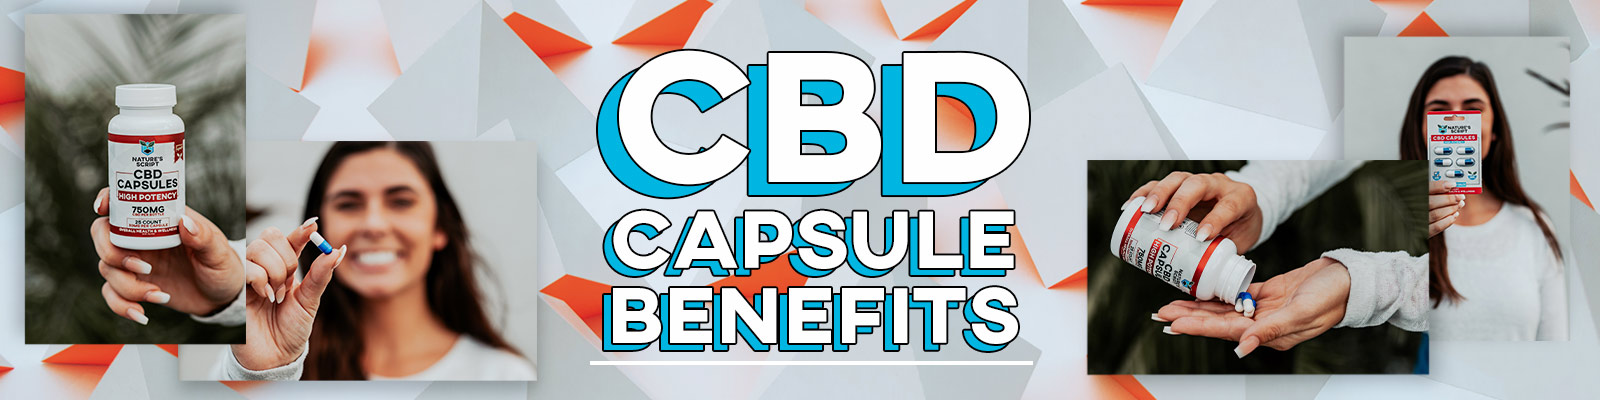 CBD Capsule Benefits and Daily Uses Banner